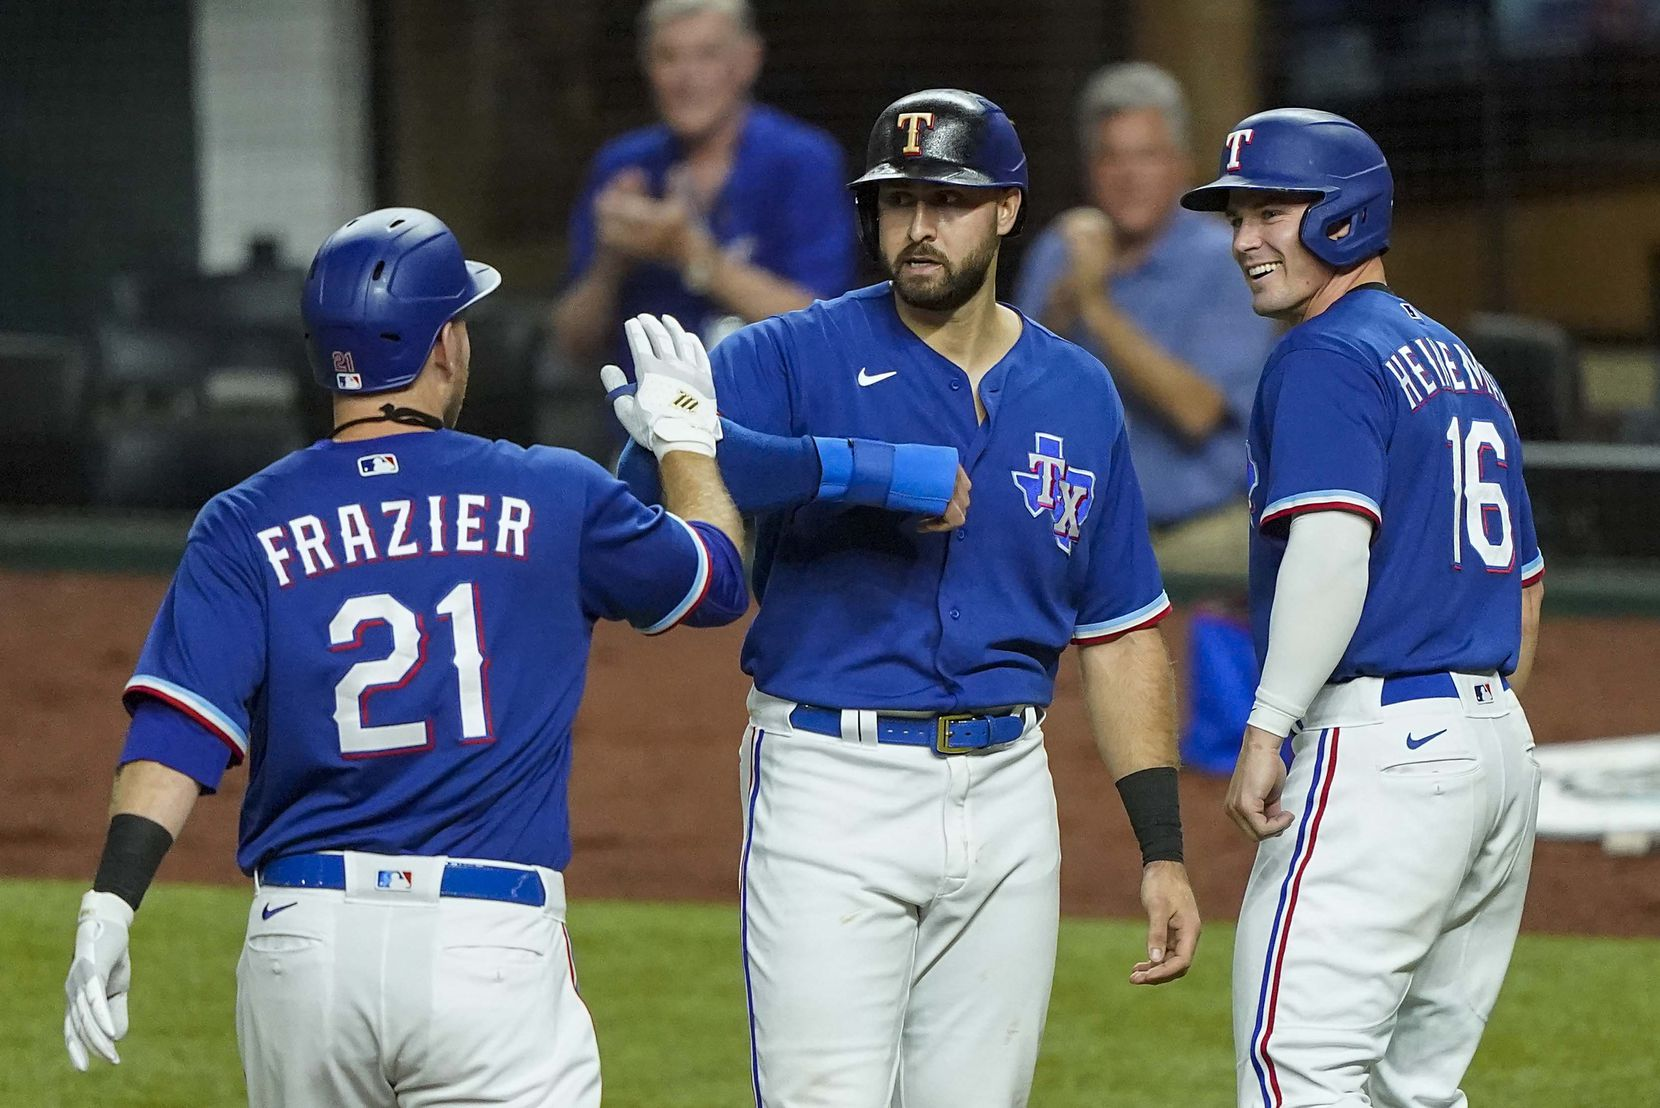 Texas Rangers first baseman Todd Frazier celebrates with Joey Gallo and Scott Heineman after driving them in with a 3-run home run during the fifth inning of an exhibition game against the Colorado Rockies at Globe Life Field on Wednesday, July 22, 2020.